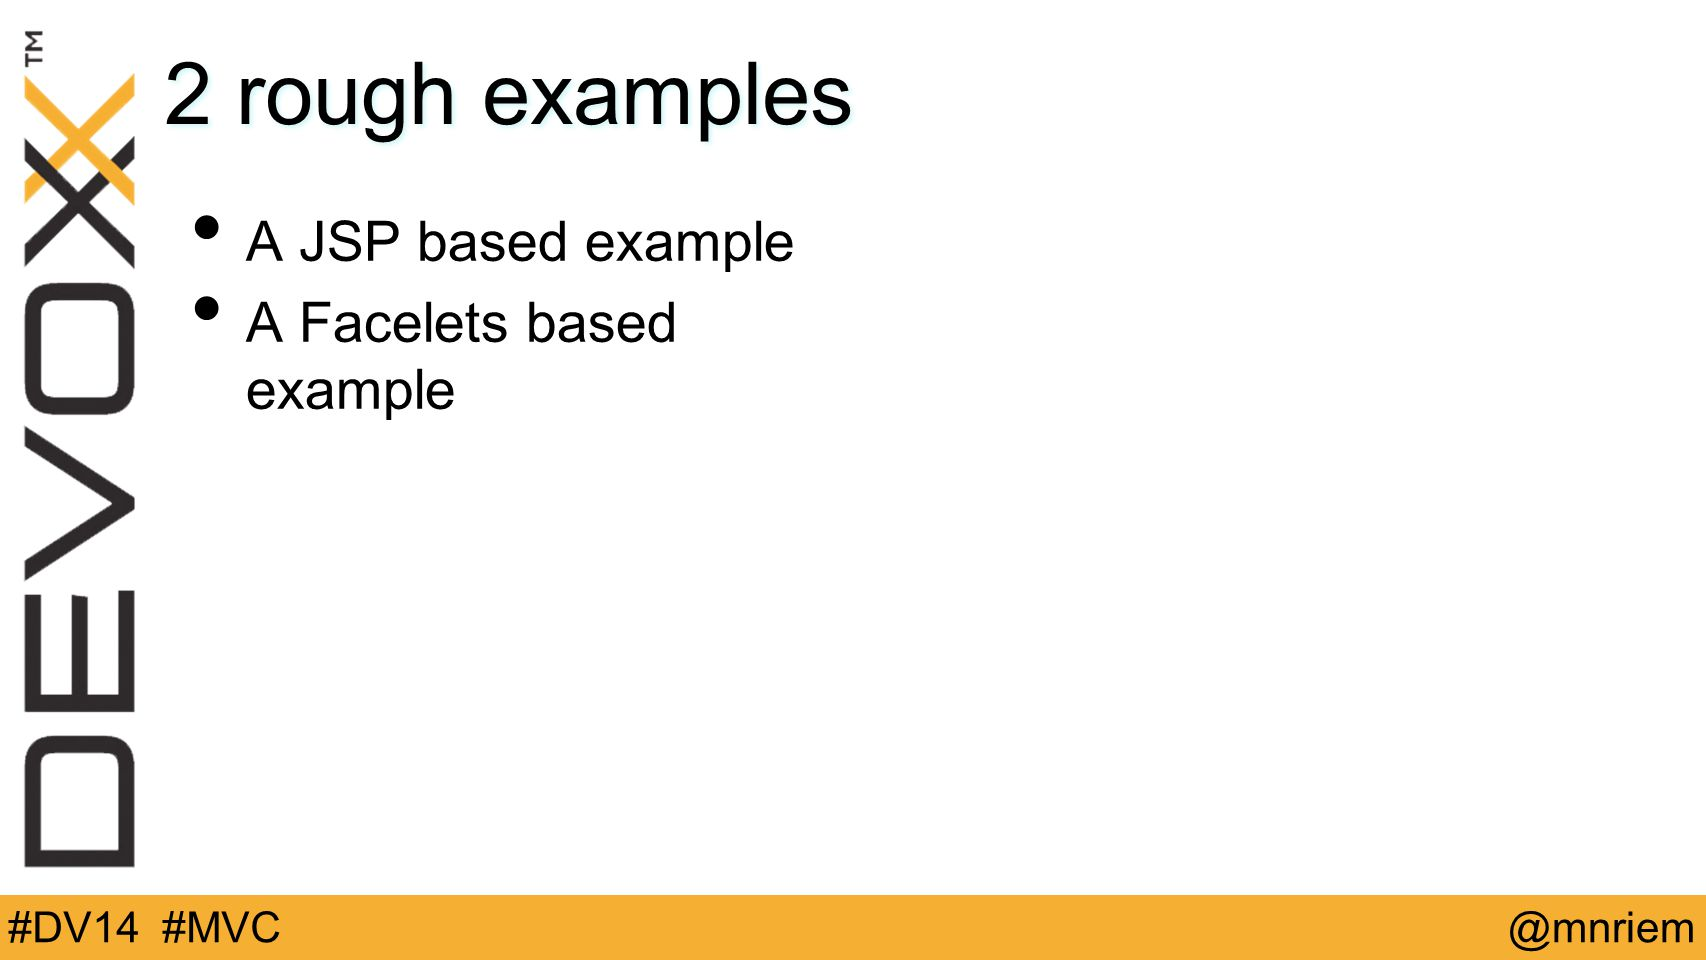 @mnriem#DV14 #MVC 2 rough examples A JSP based example A Facelets based example